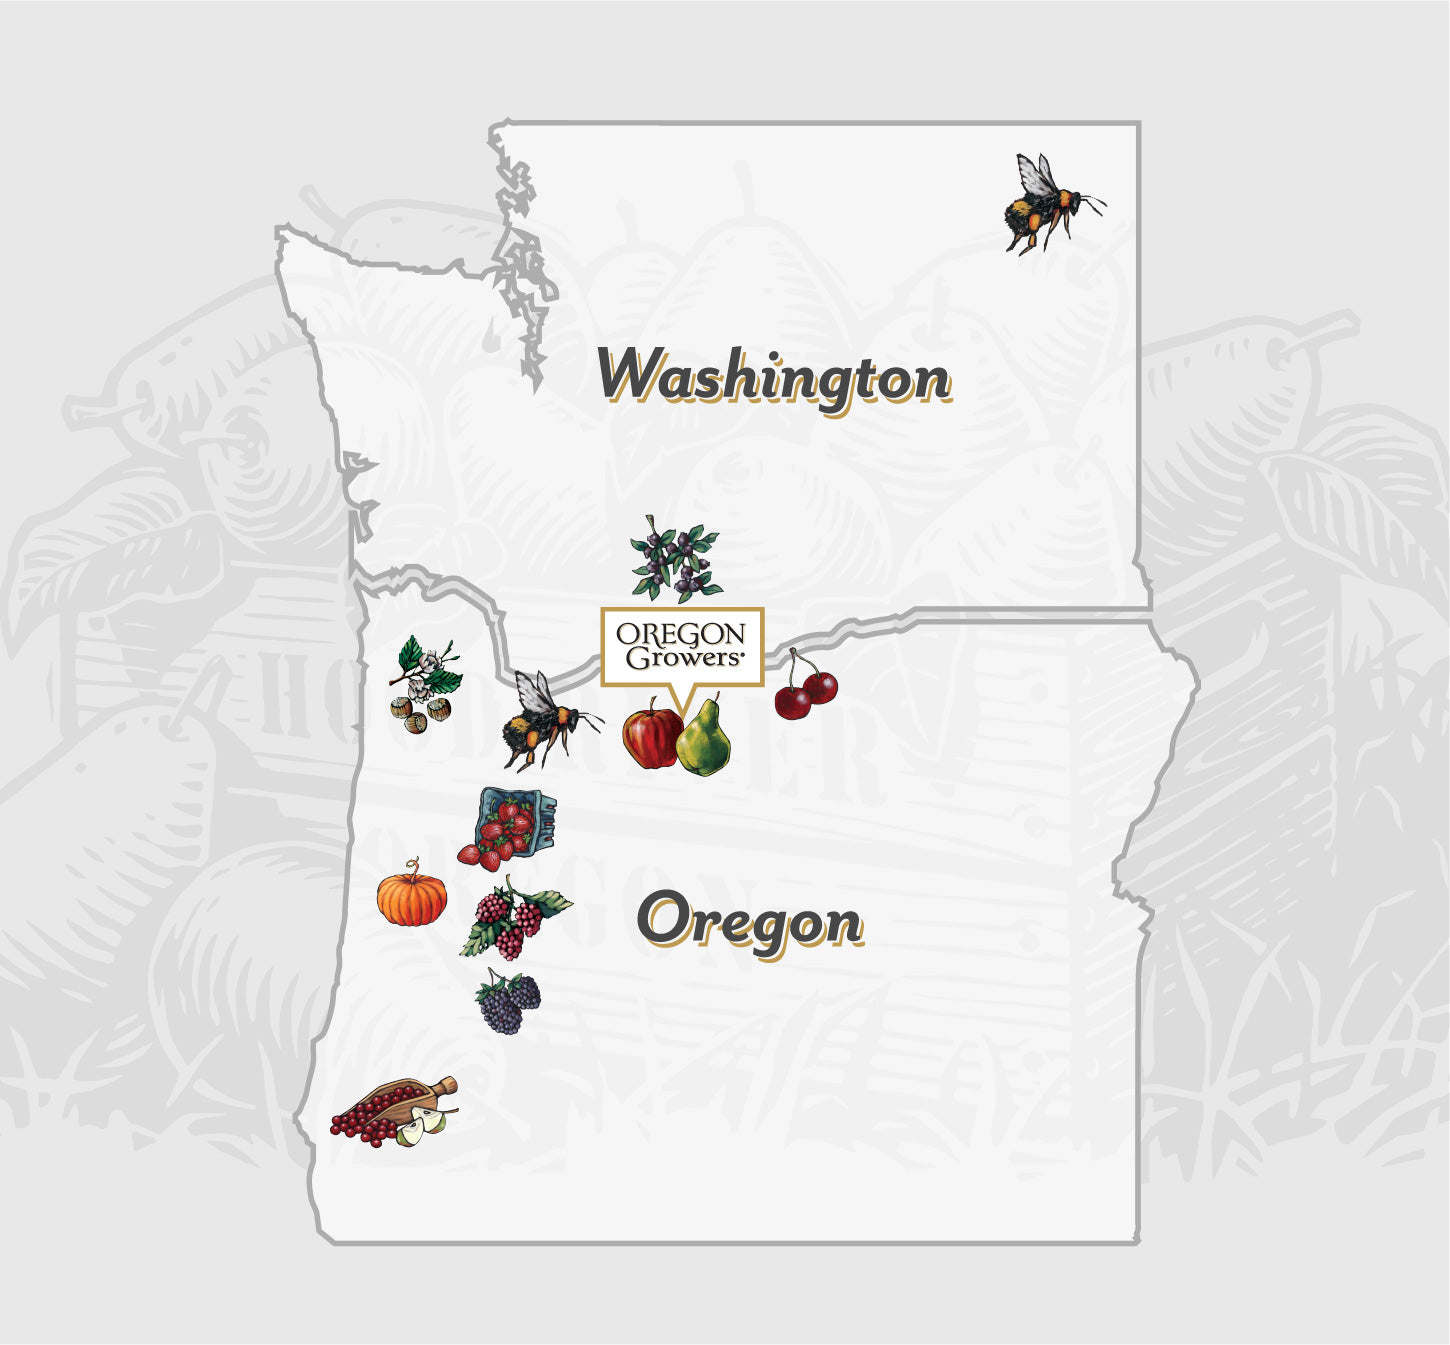 Map of Washington and Oregon showing location of Oregon Growers farming partners and products